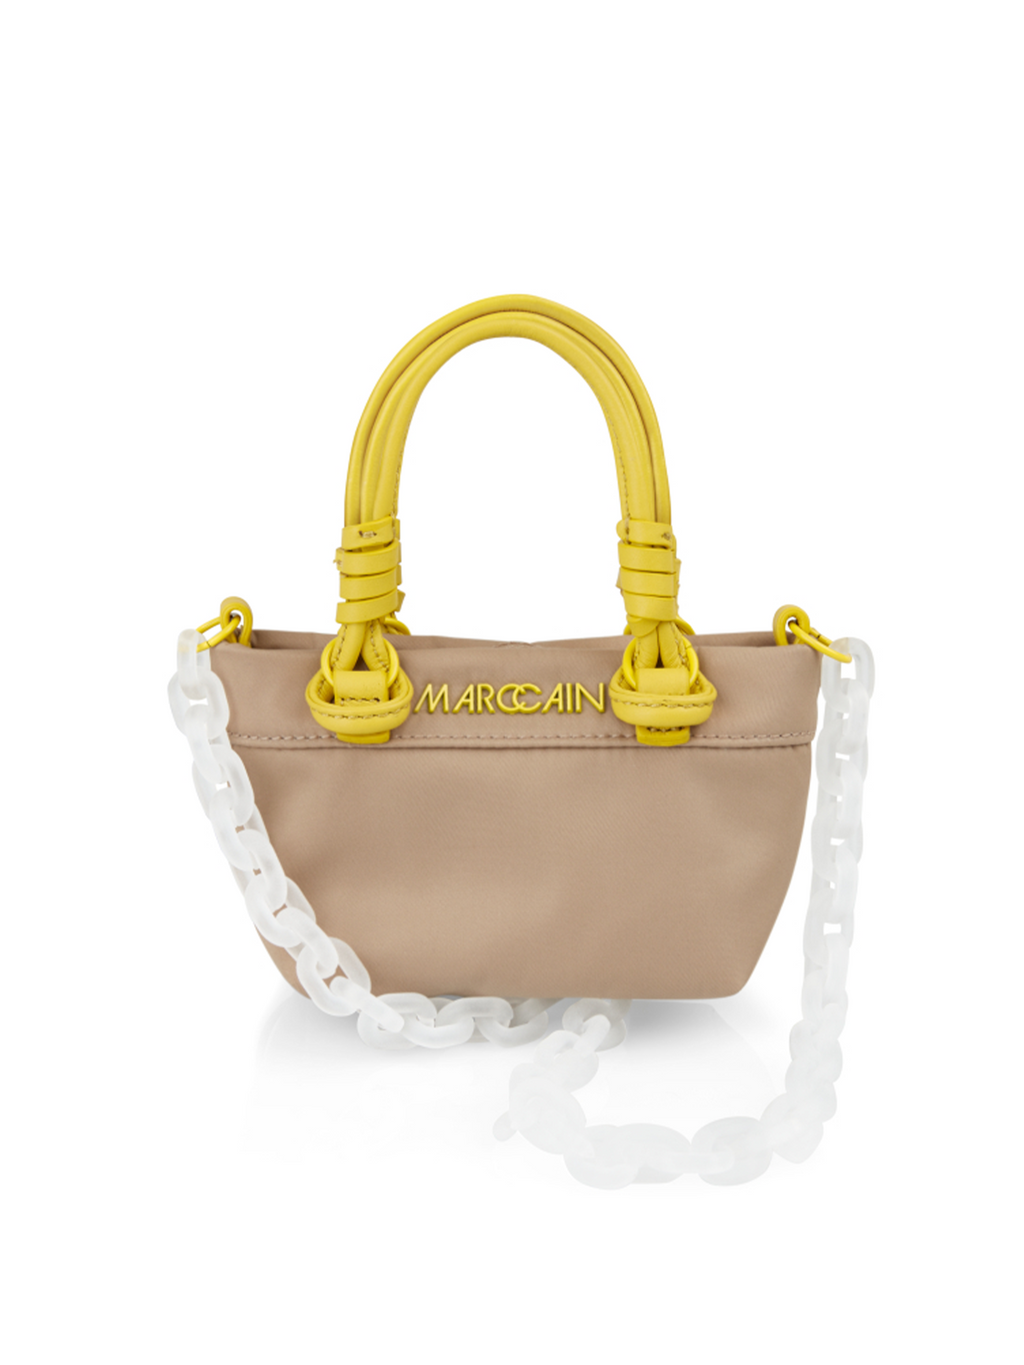 Marc Cain Mini Bag with Decorative Chain - Kangaroo